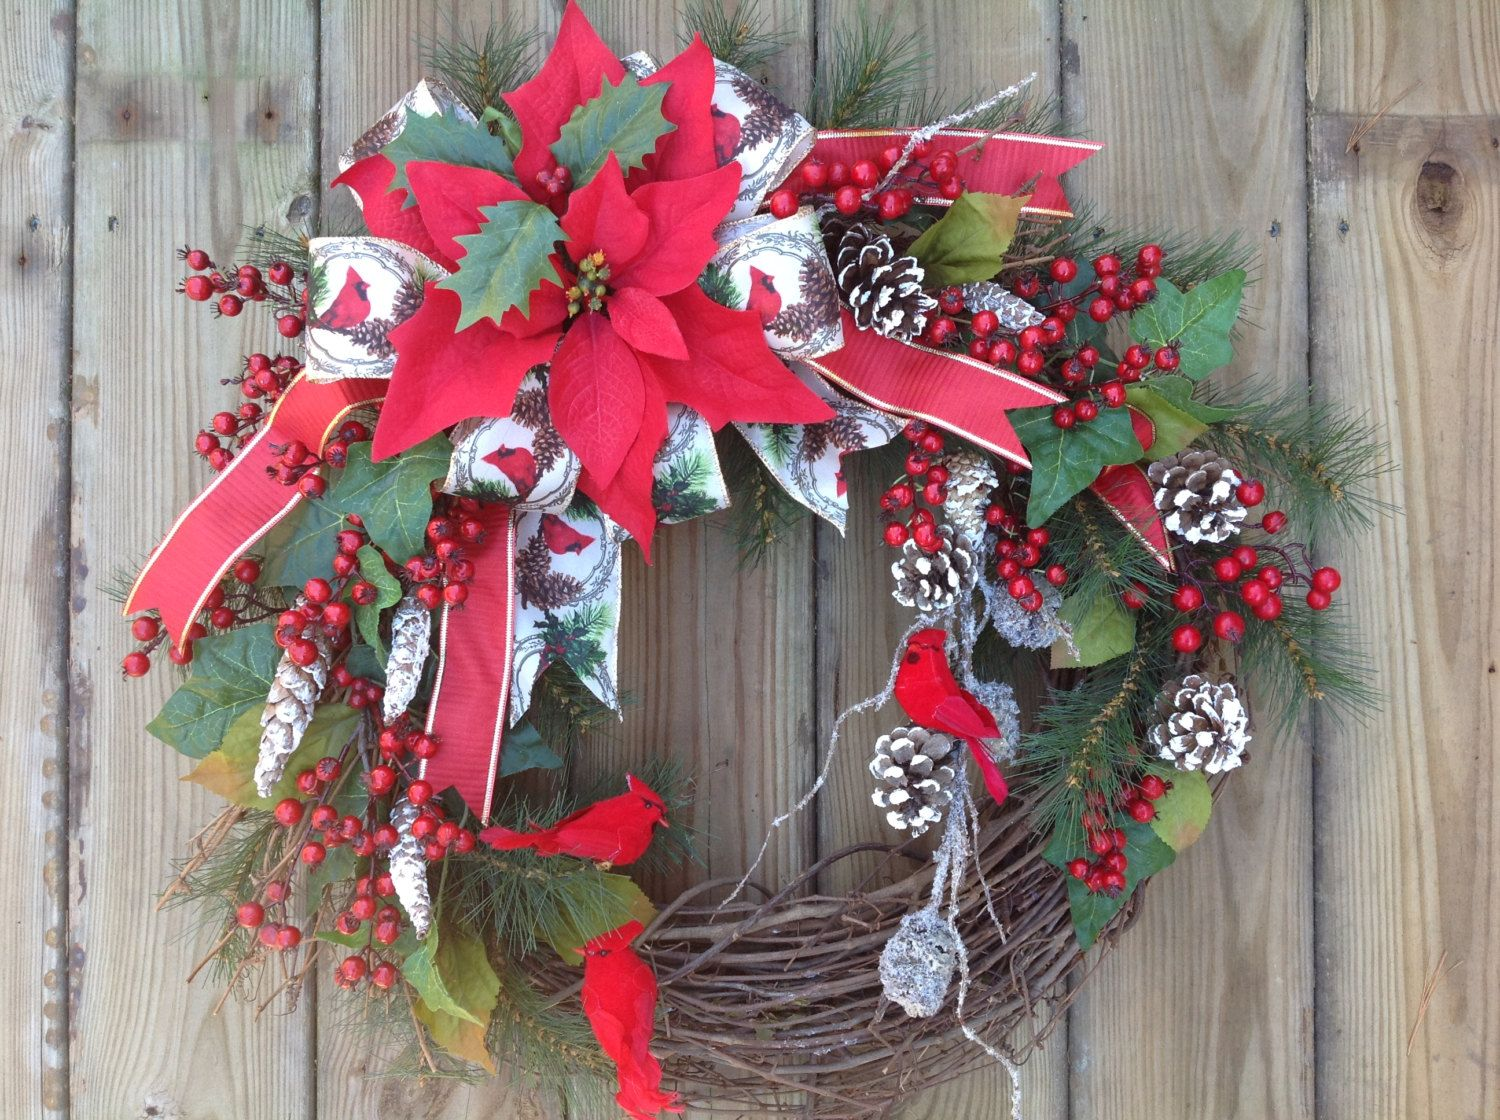 Ordinaire Christmas Wreath, Cardinal Wreath, Winter Wreath, Cottage Garden Wreath,  Grapevine Wreath,